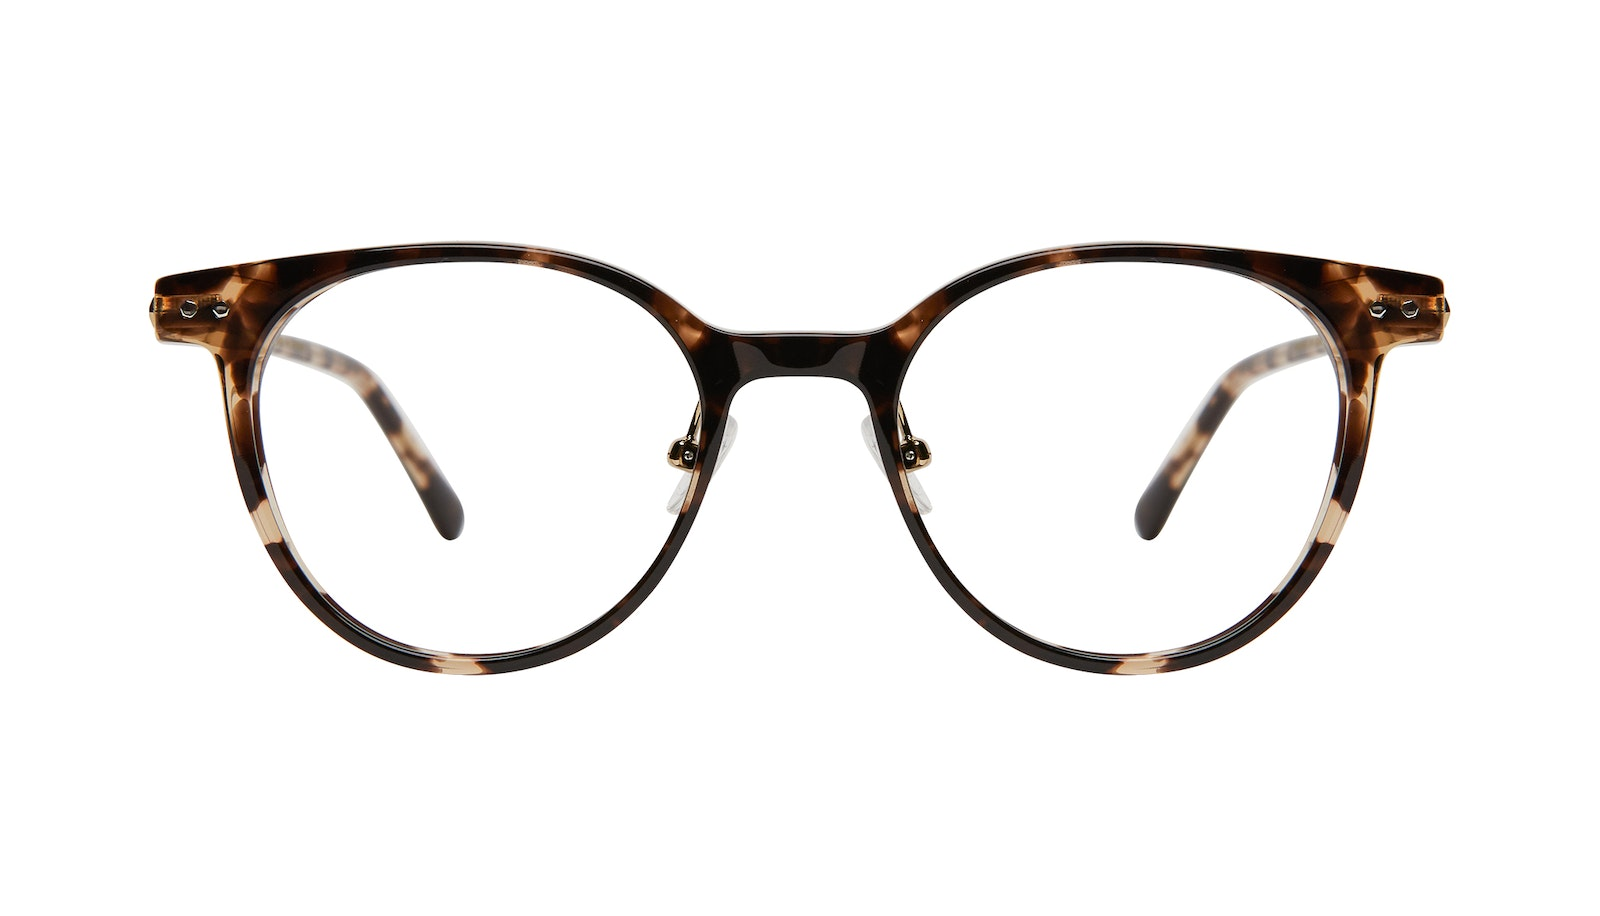 Affordable Fashion Glasses Round Eyeglasses Women Lightheart M Leopard